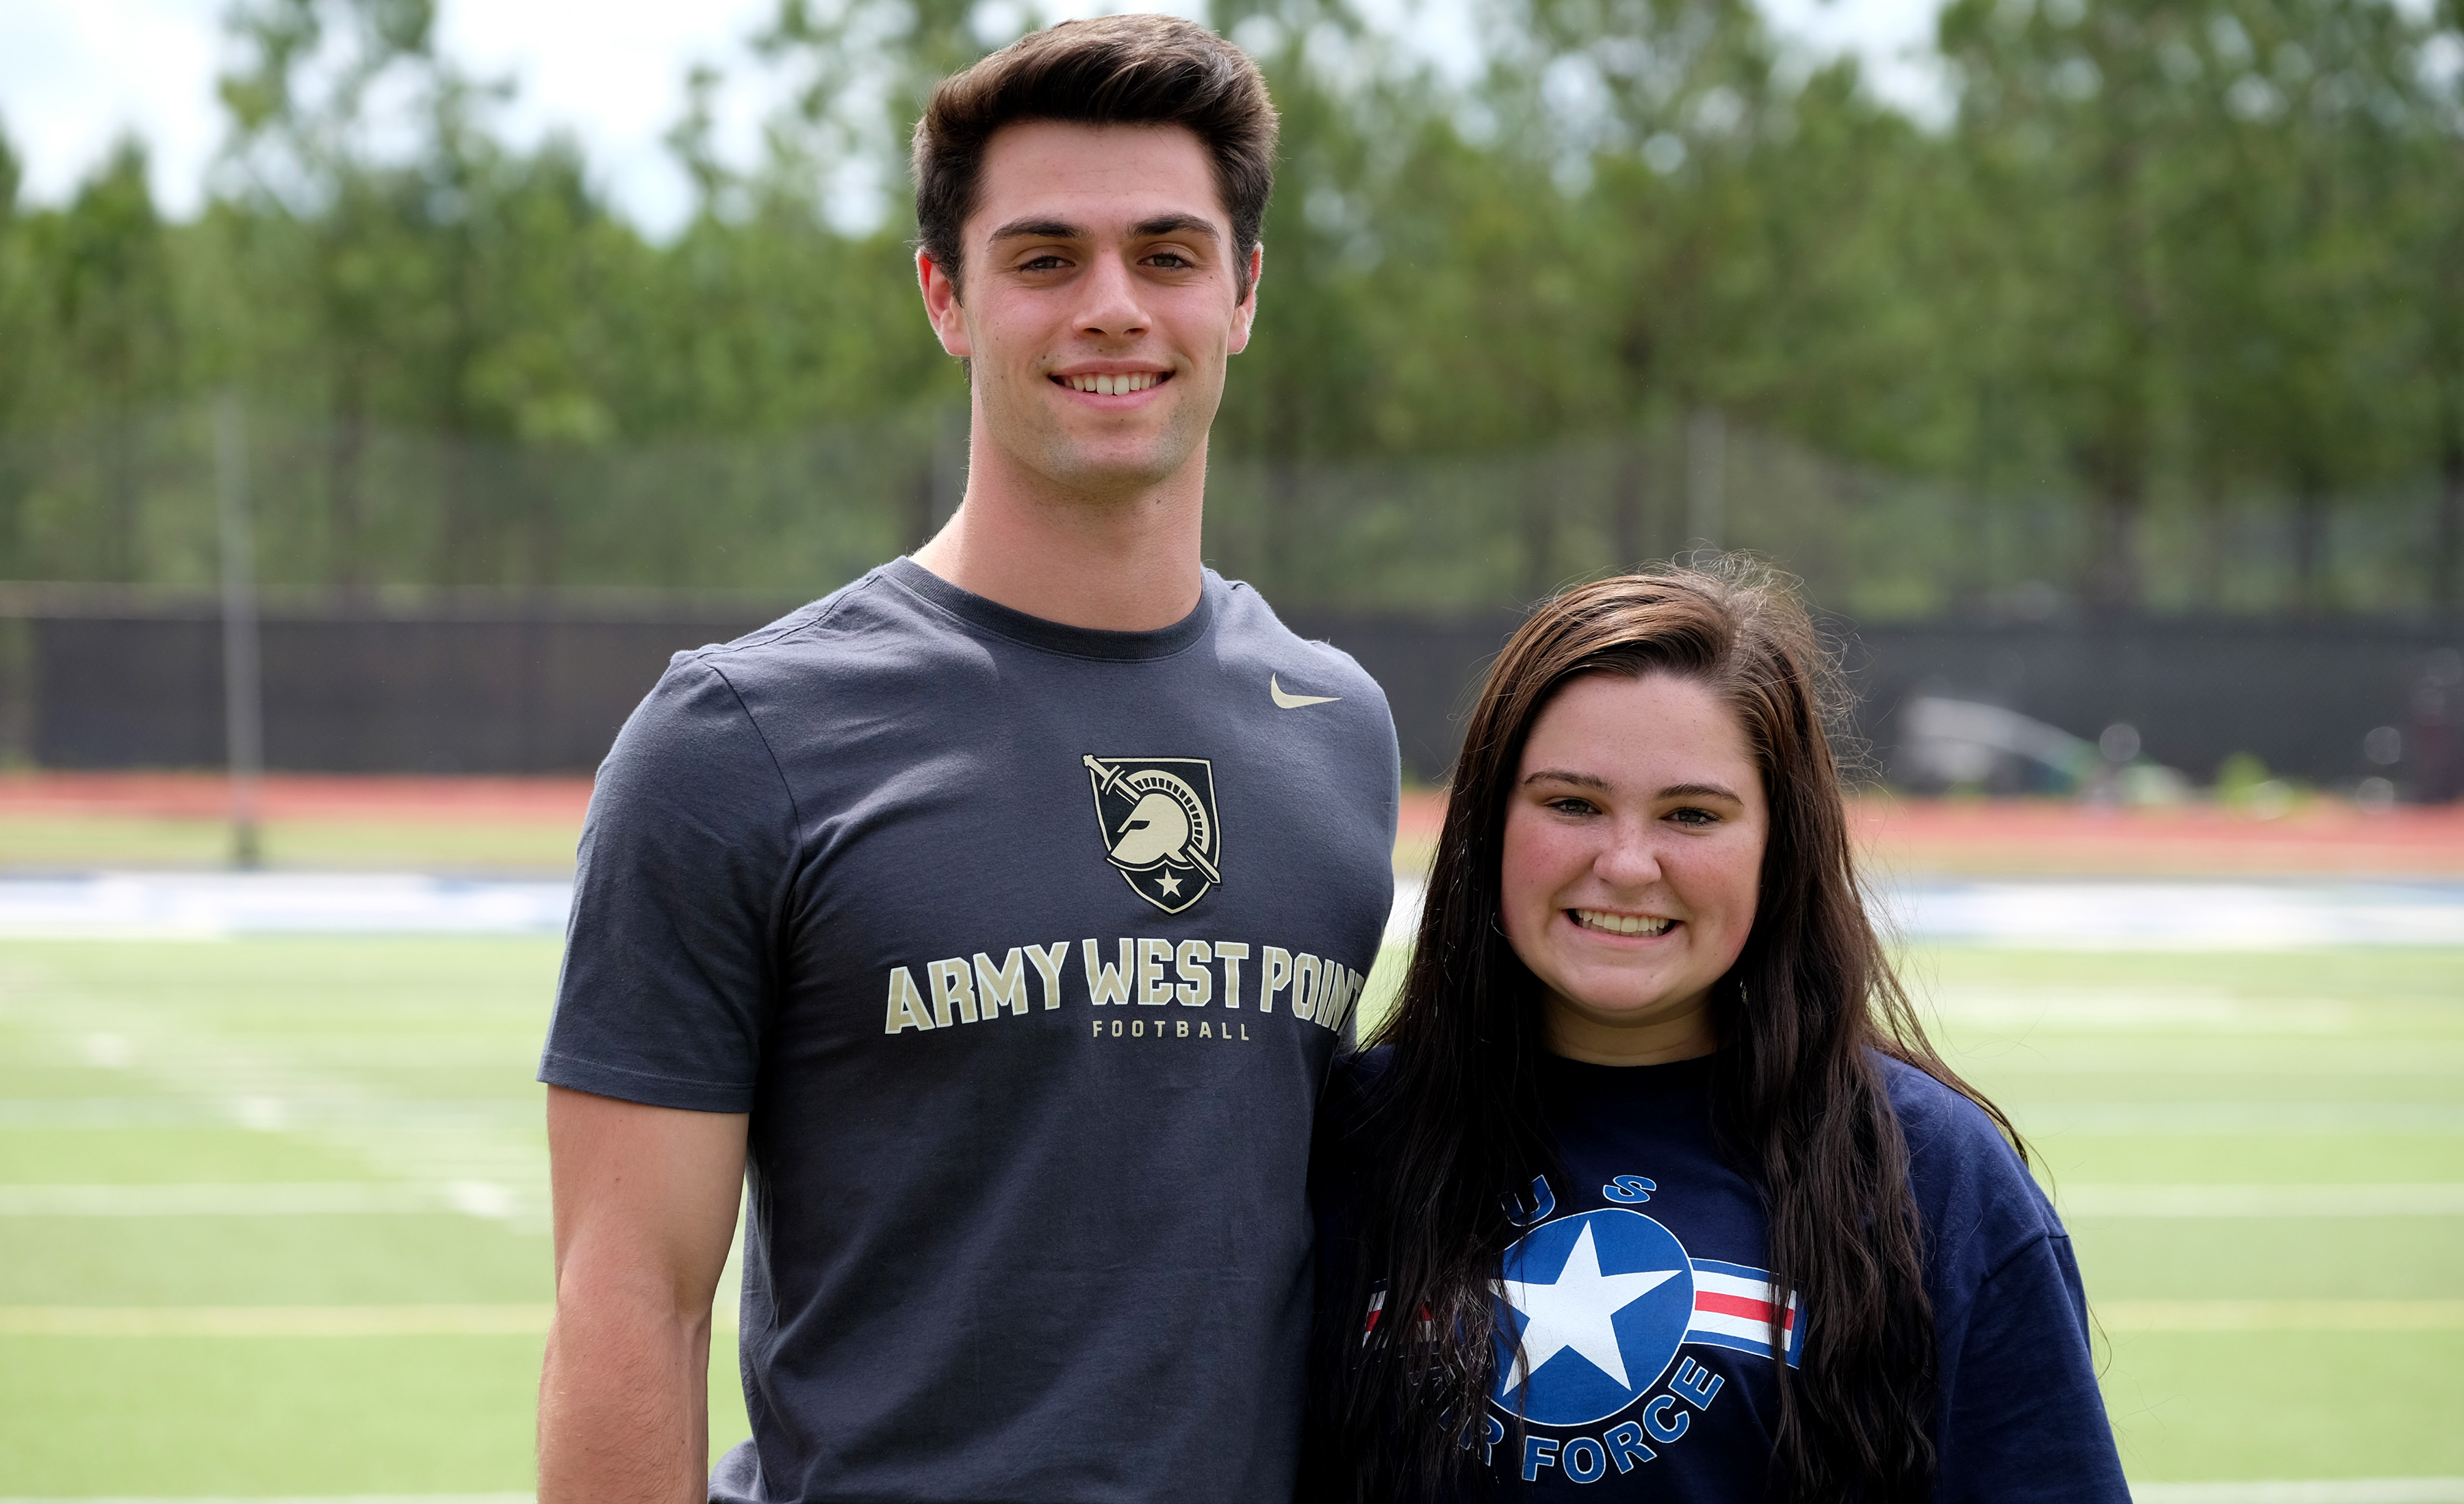 Get There From Here: Military Academies